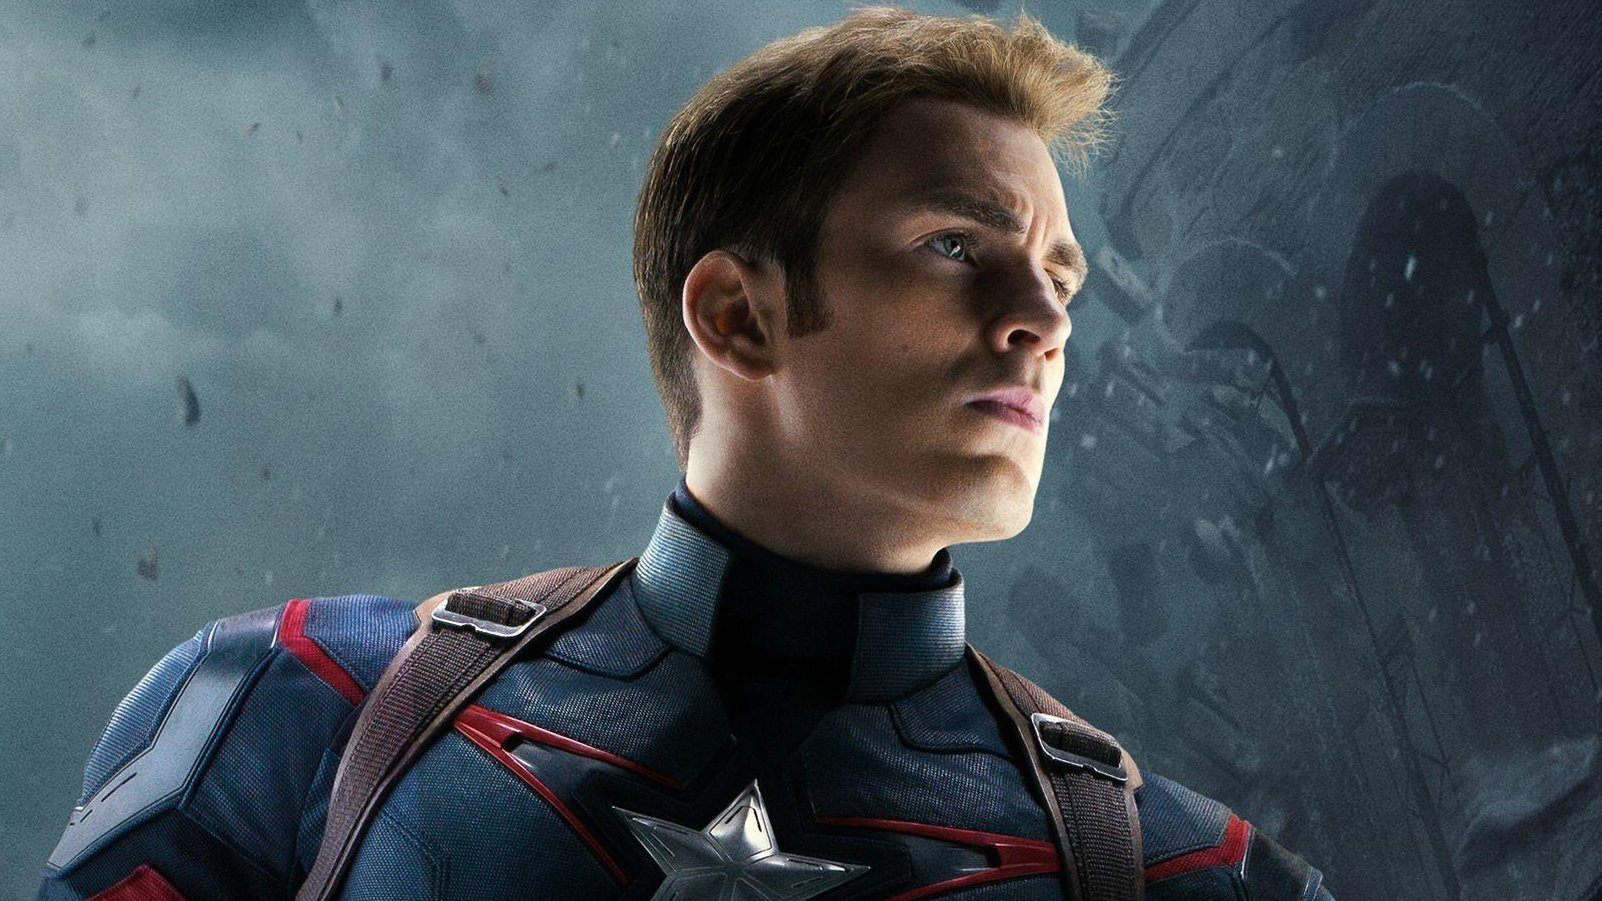 See Chris Evans' Real Captain America Replacement, And More Official Marvel News